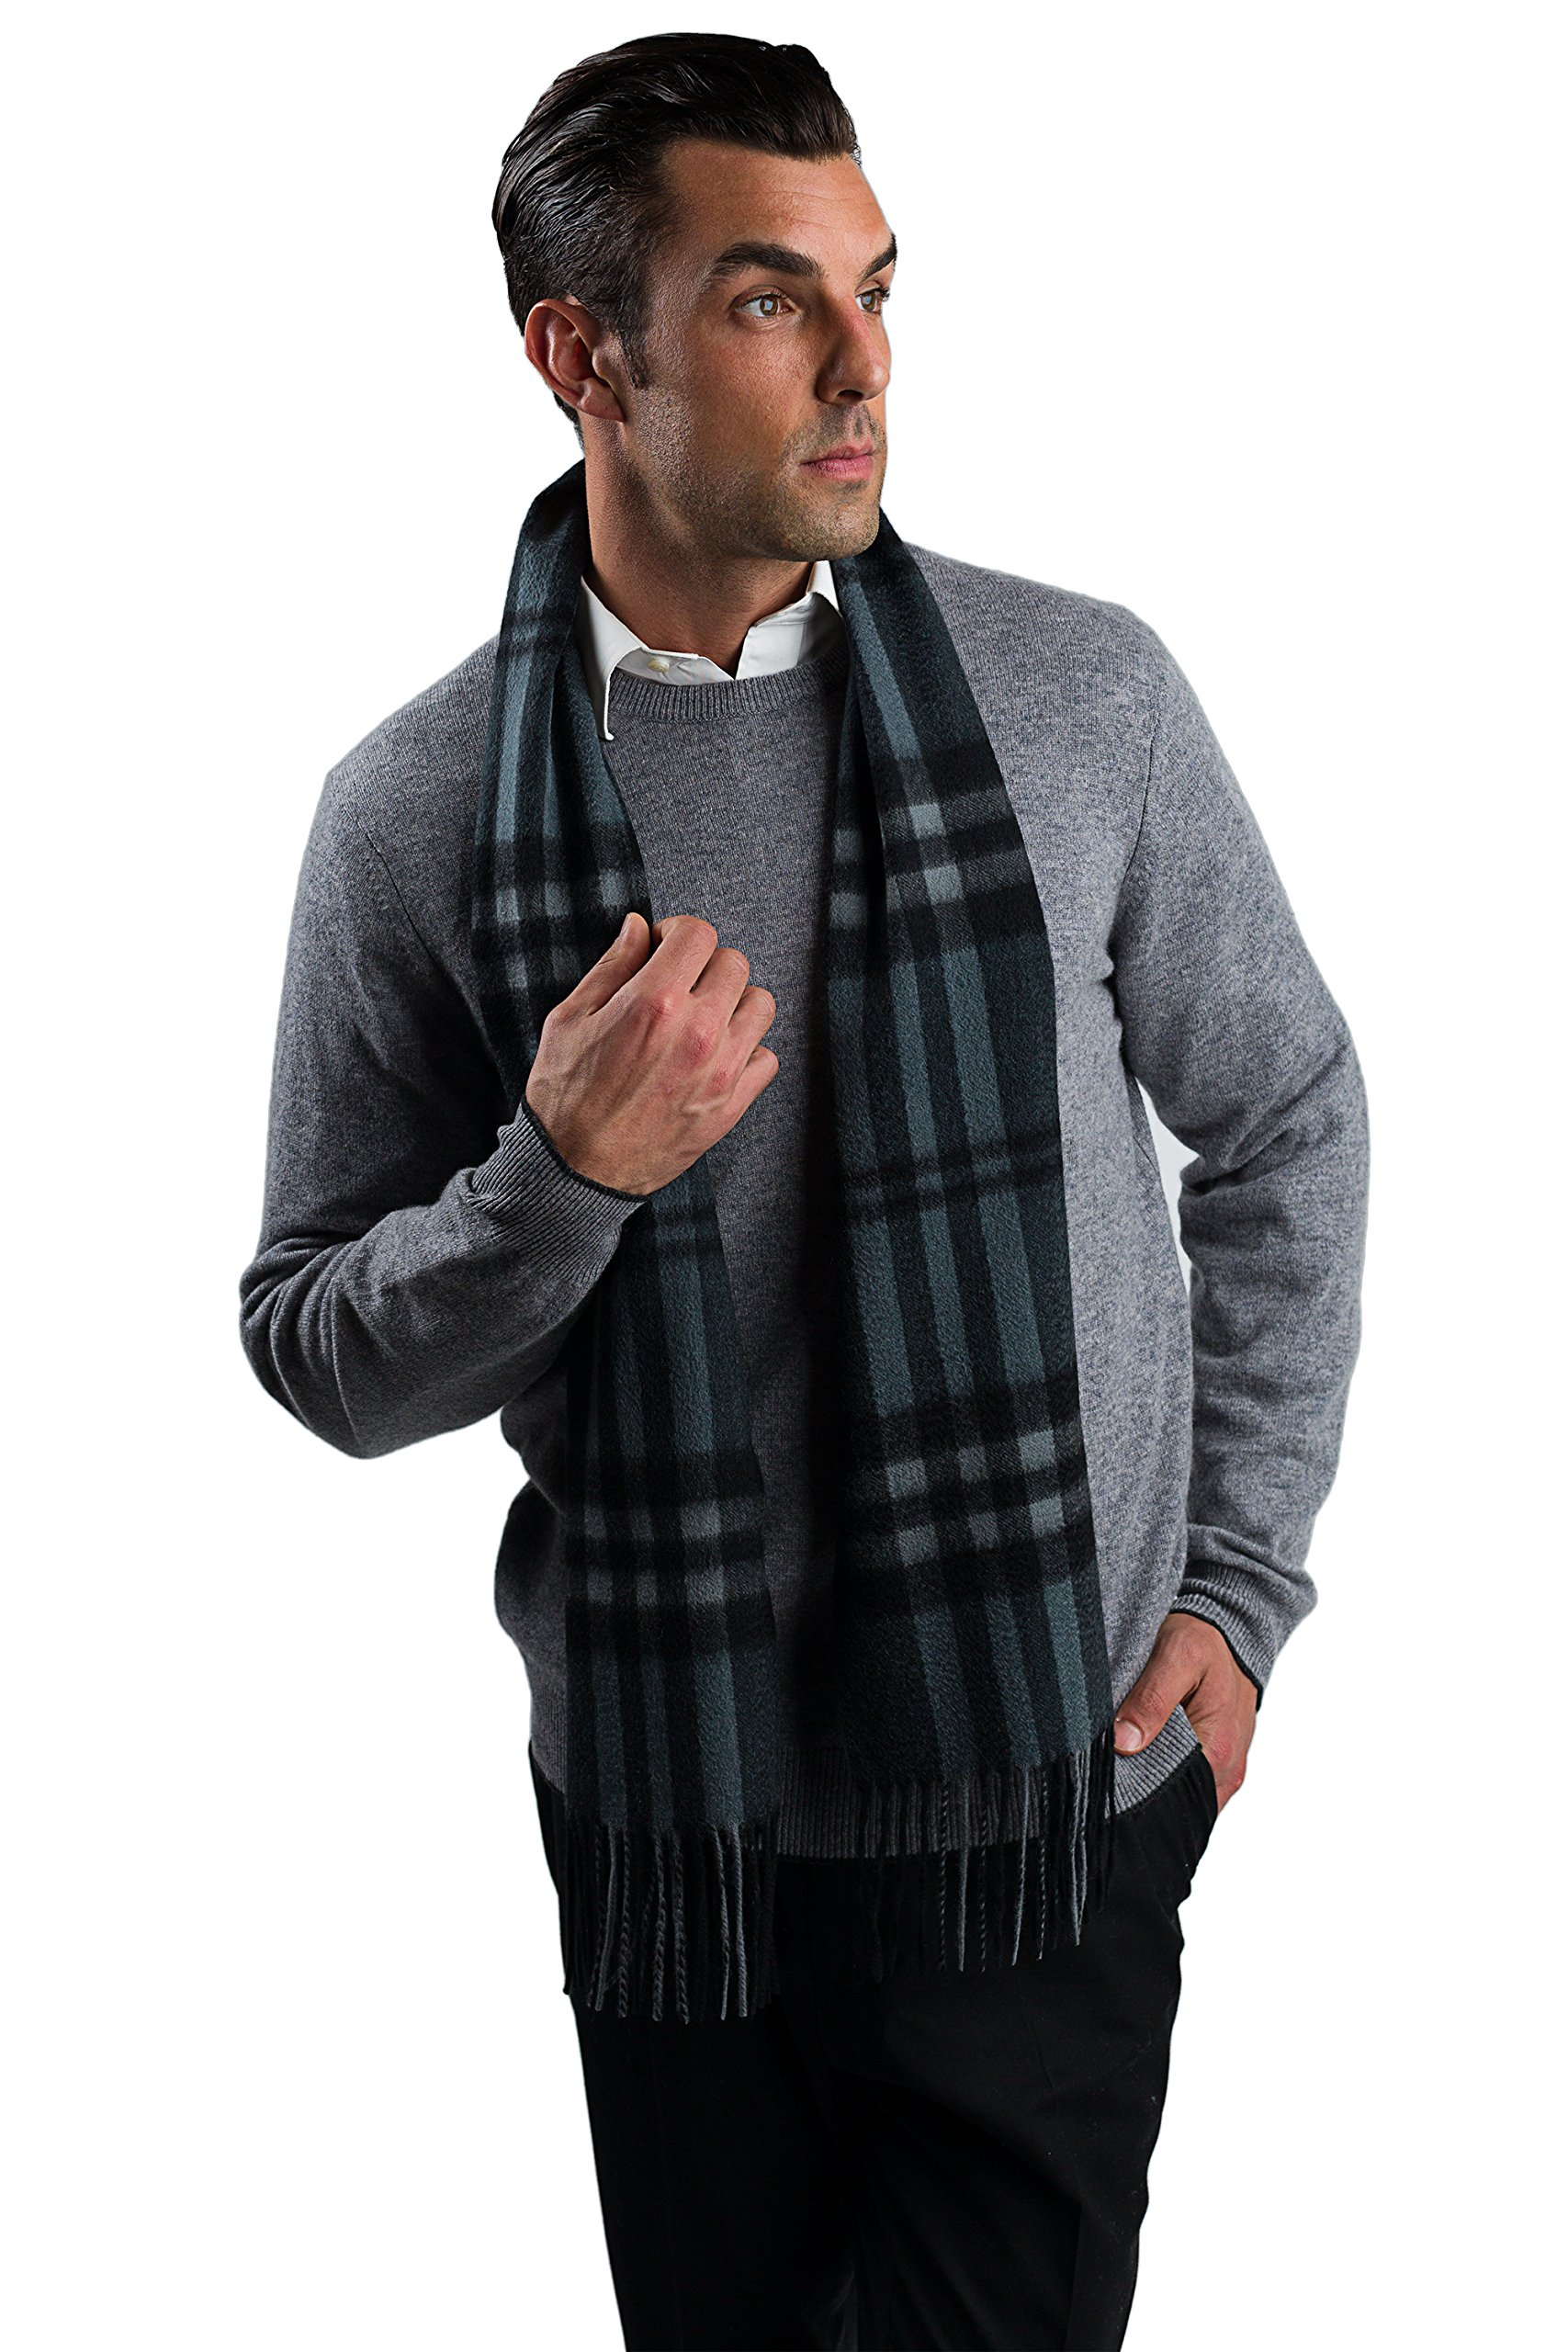 JENNIE LIU 68'' X 12'' Men's Solid and Plaid Designs 100% Cashmere Scarf Grey Plaid